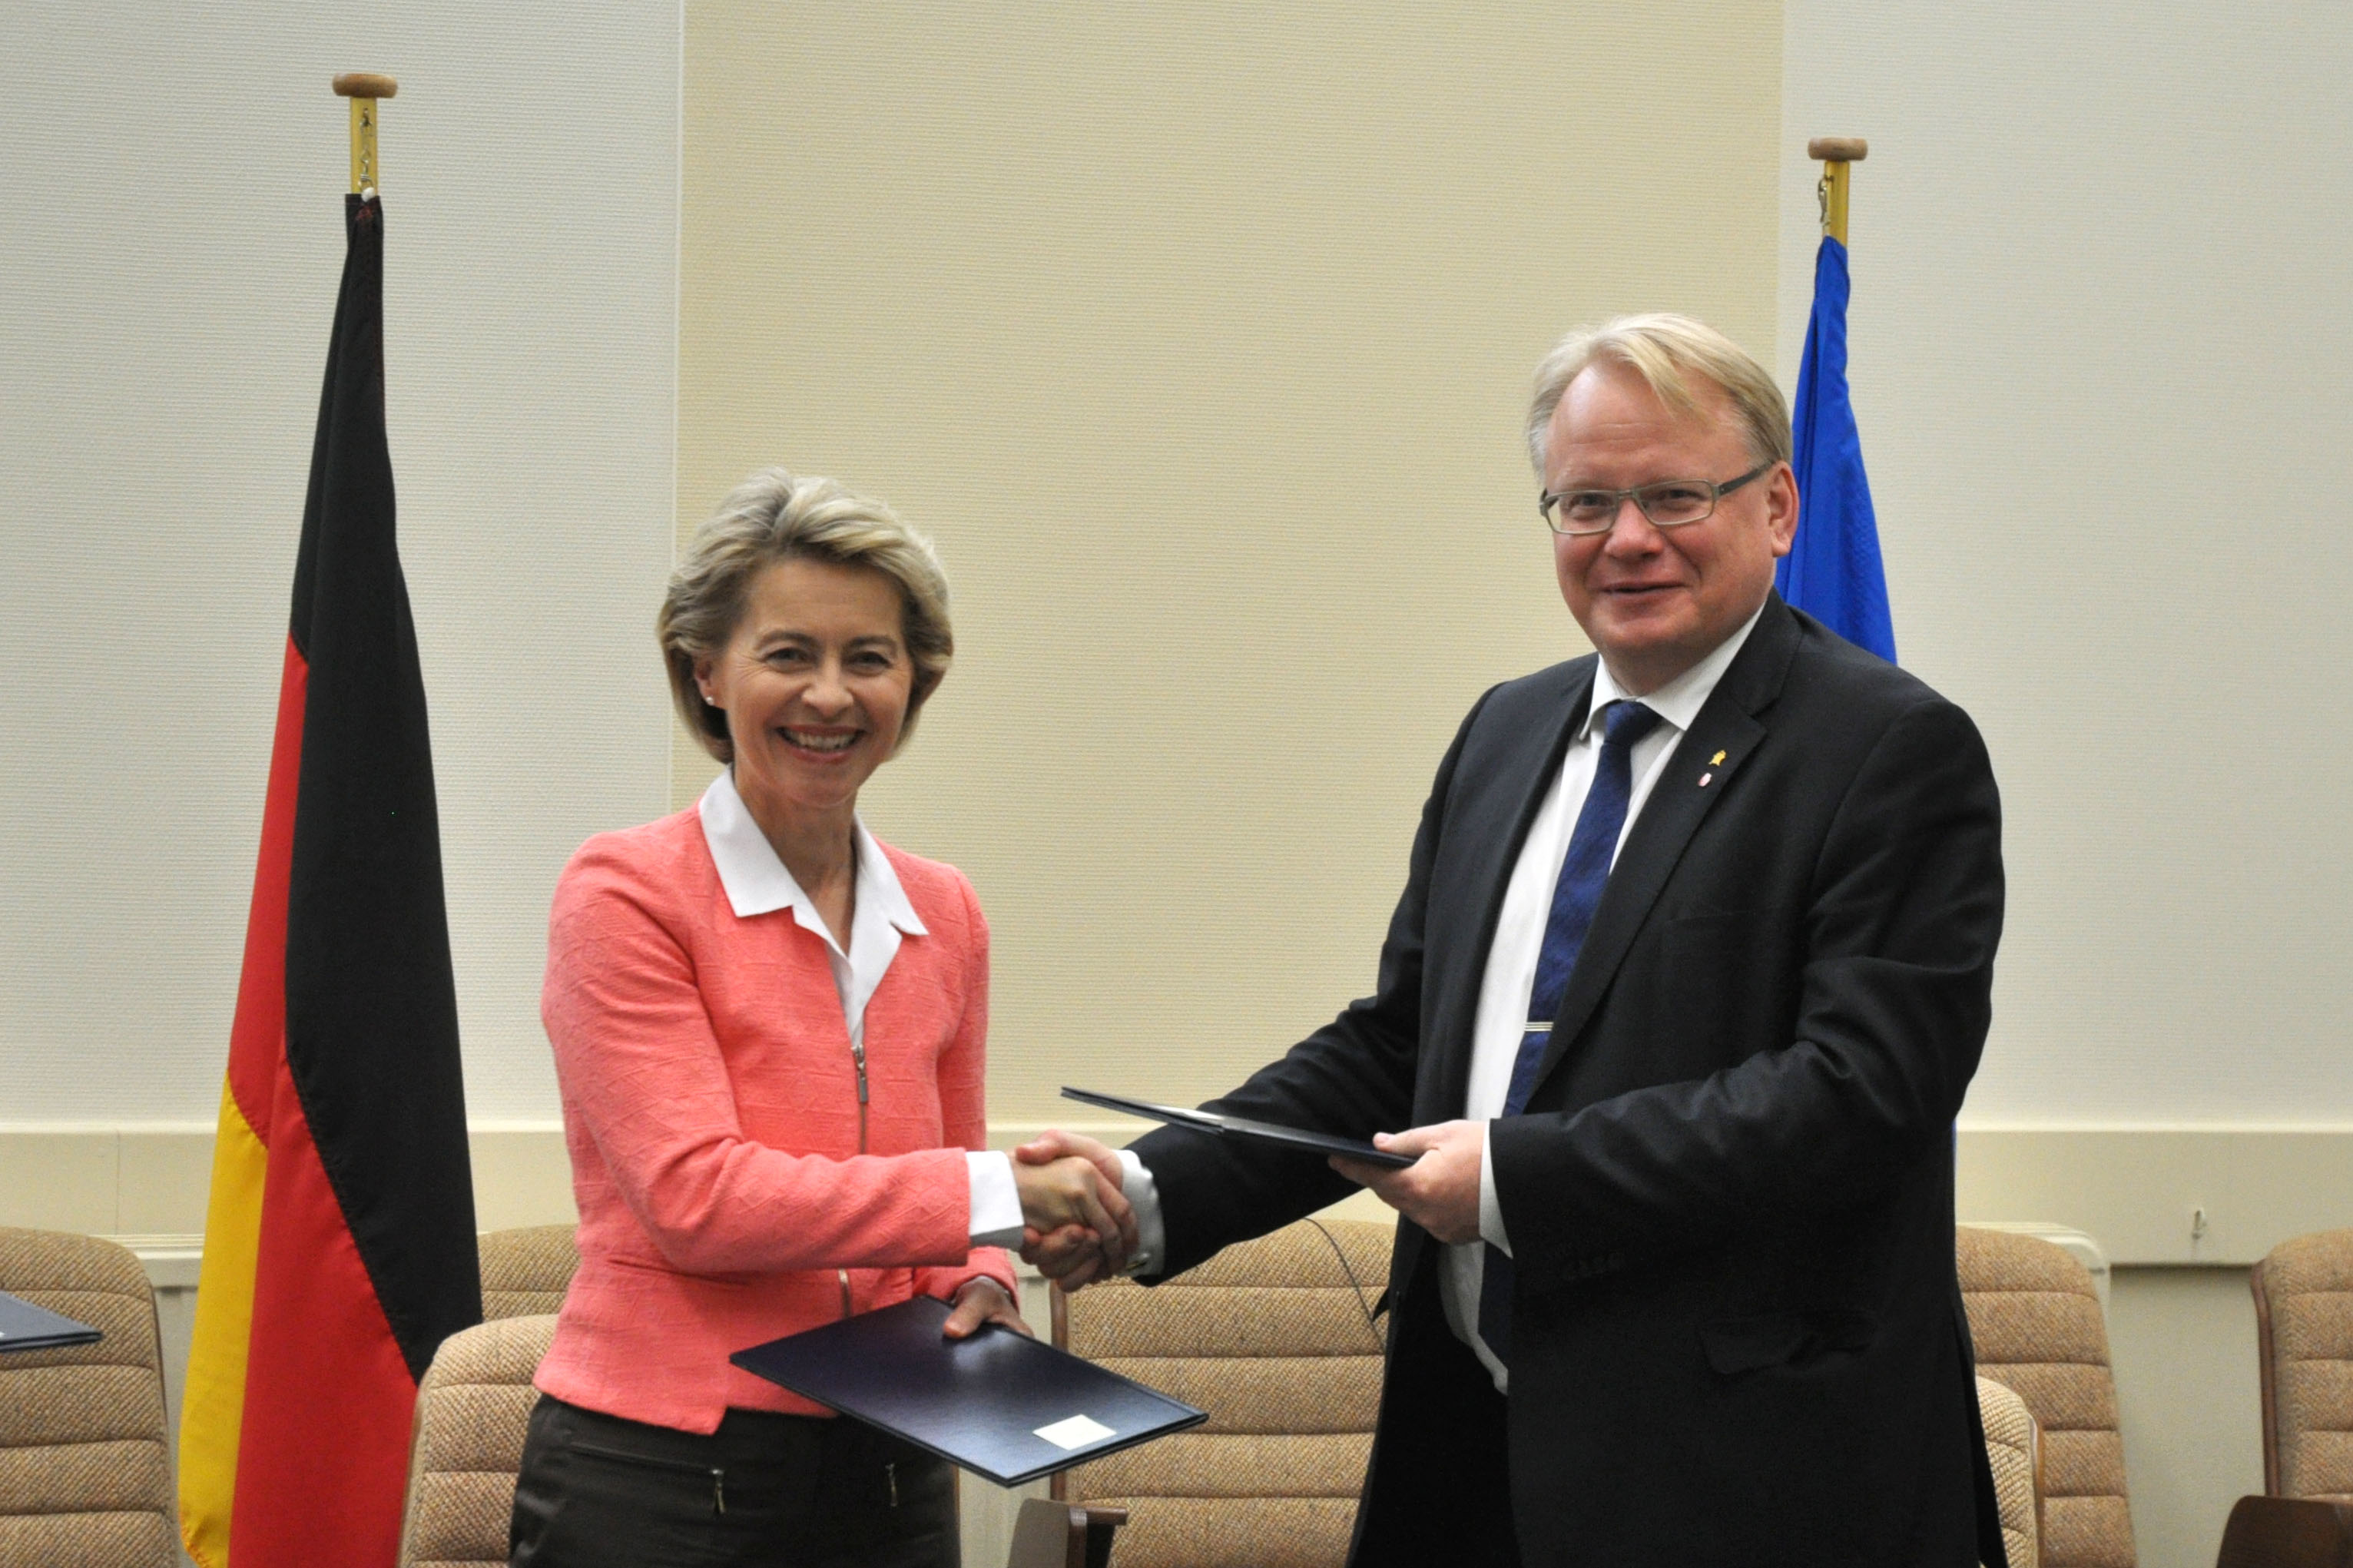 Minister for Defence Peter Hultqvist and his German counterpart Minister of Defence Dr. Ursula von der Leyen